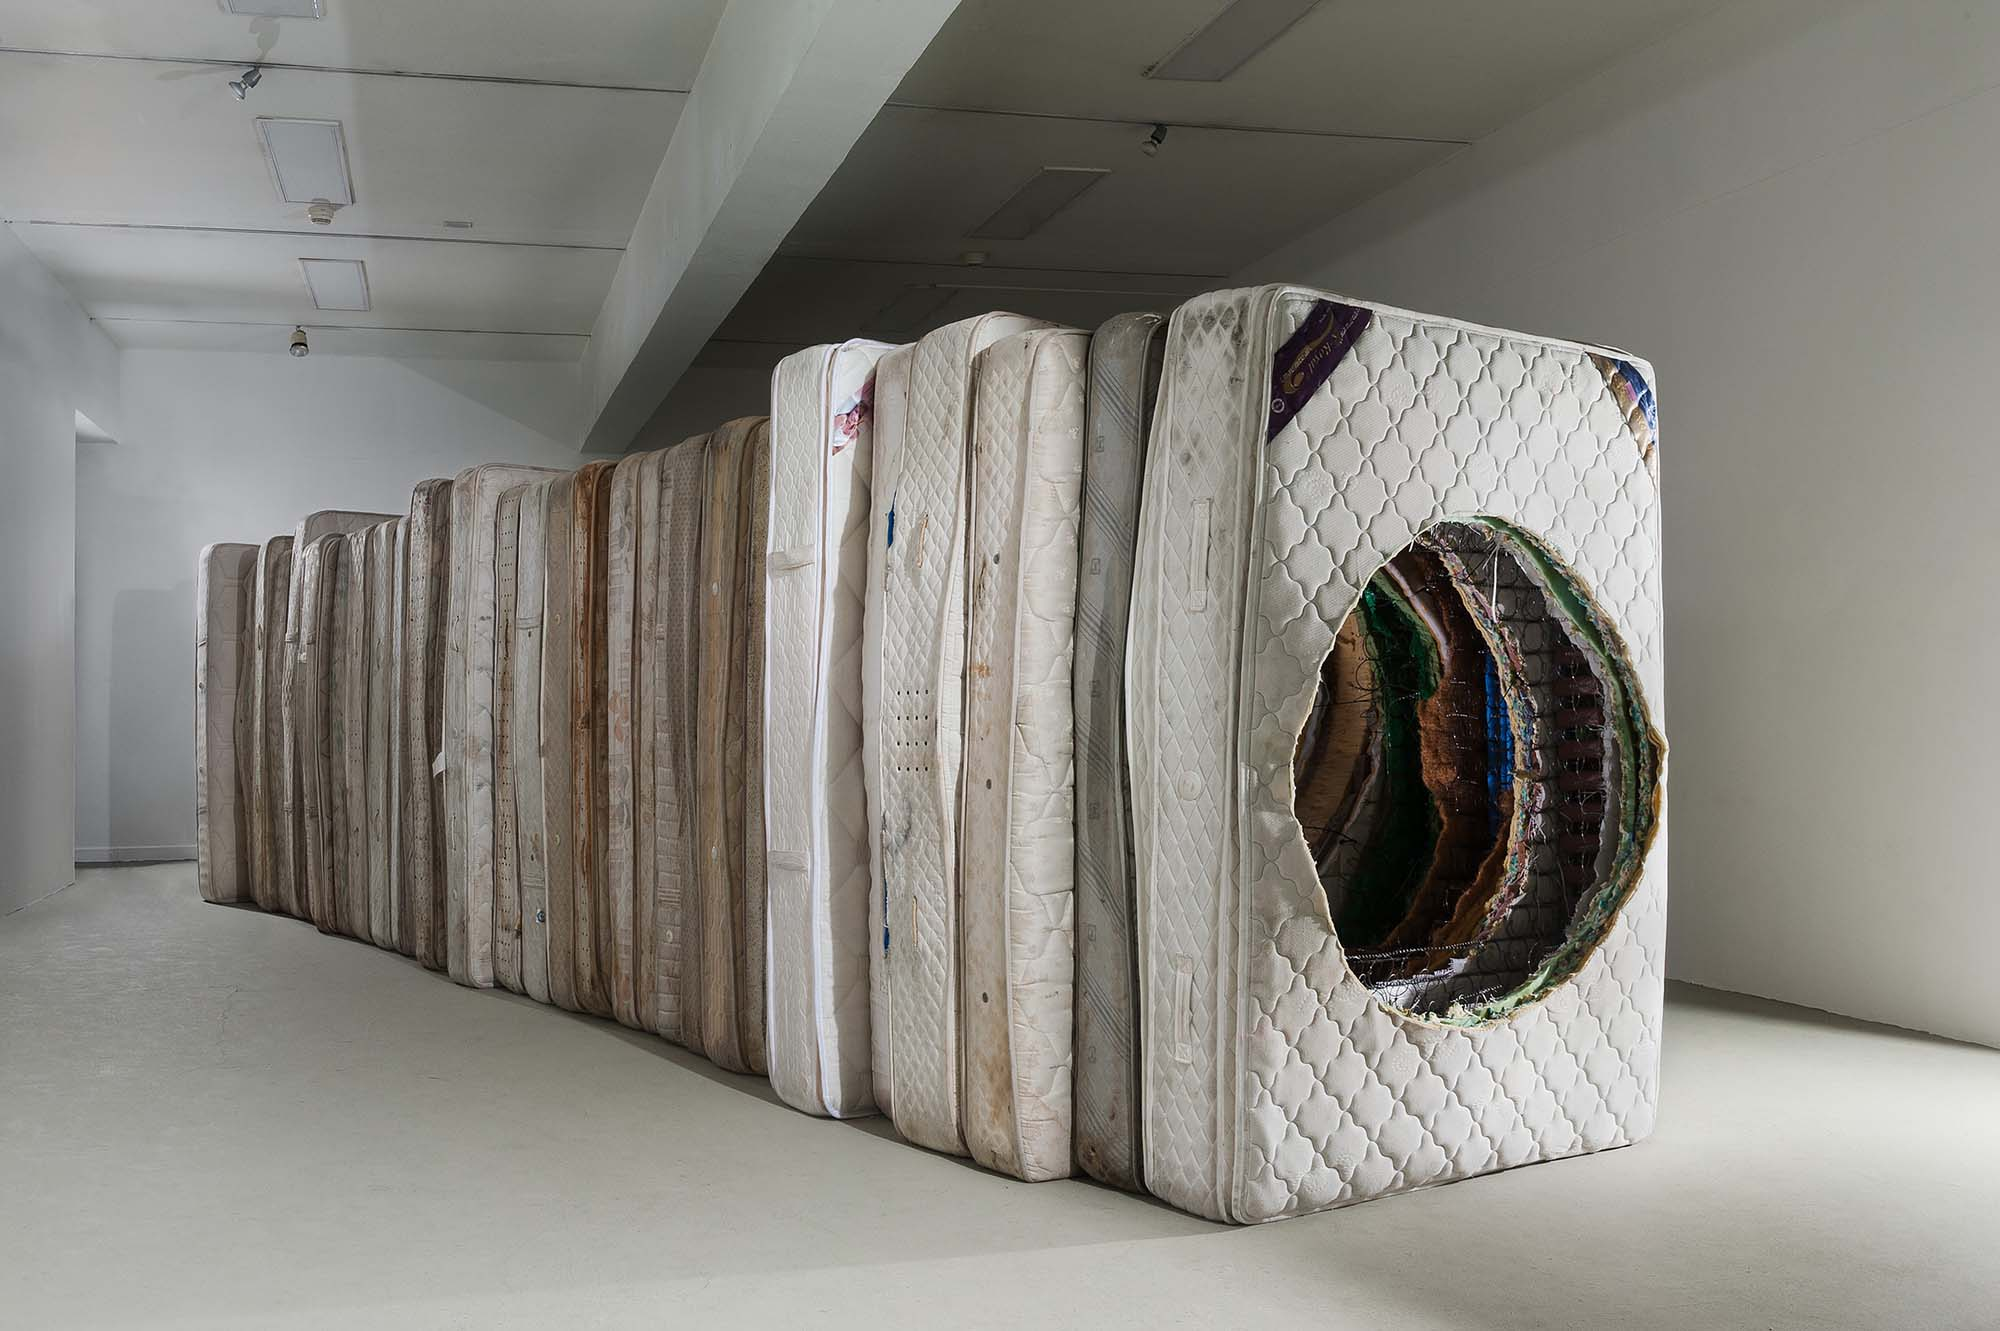 Zac Hacmon, Title: Take Me Back (2015) Media: Mattresses, hooks Dimensions: 28ft x 7ft x 5ft